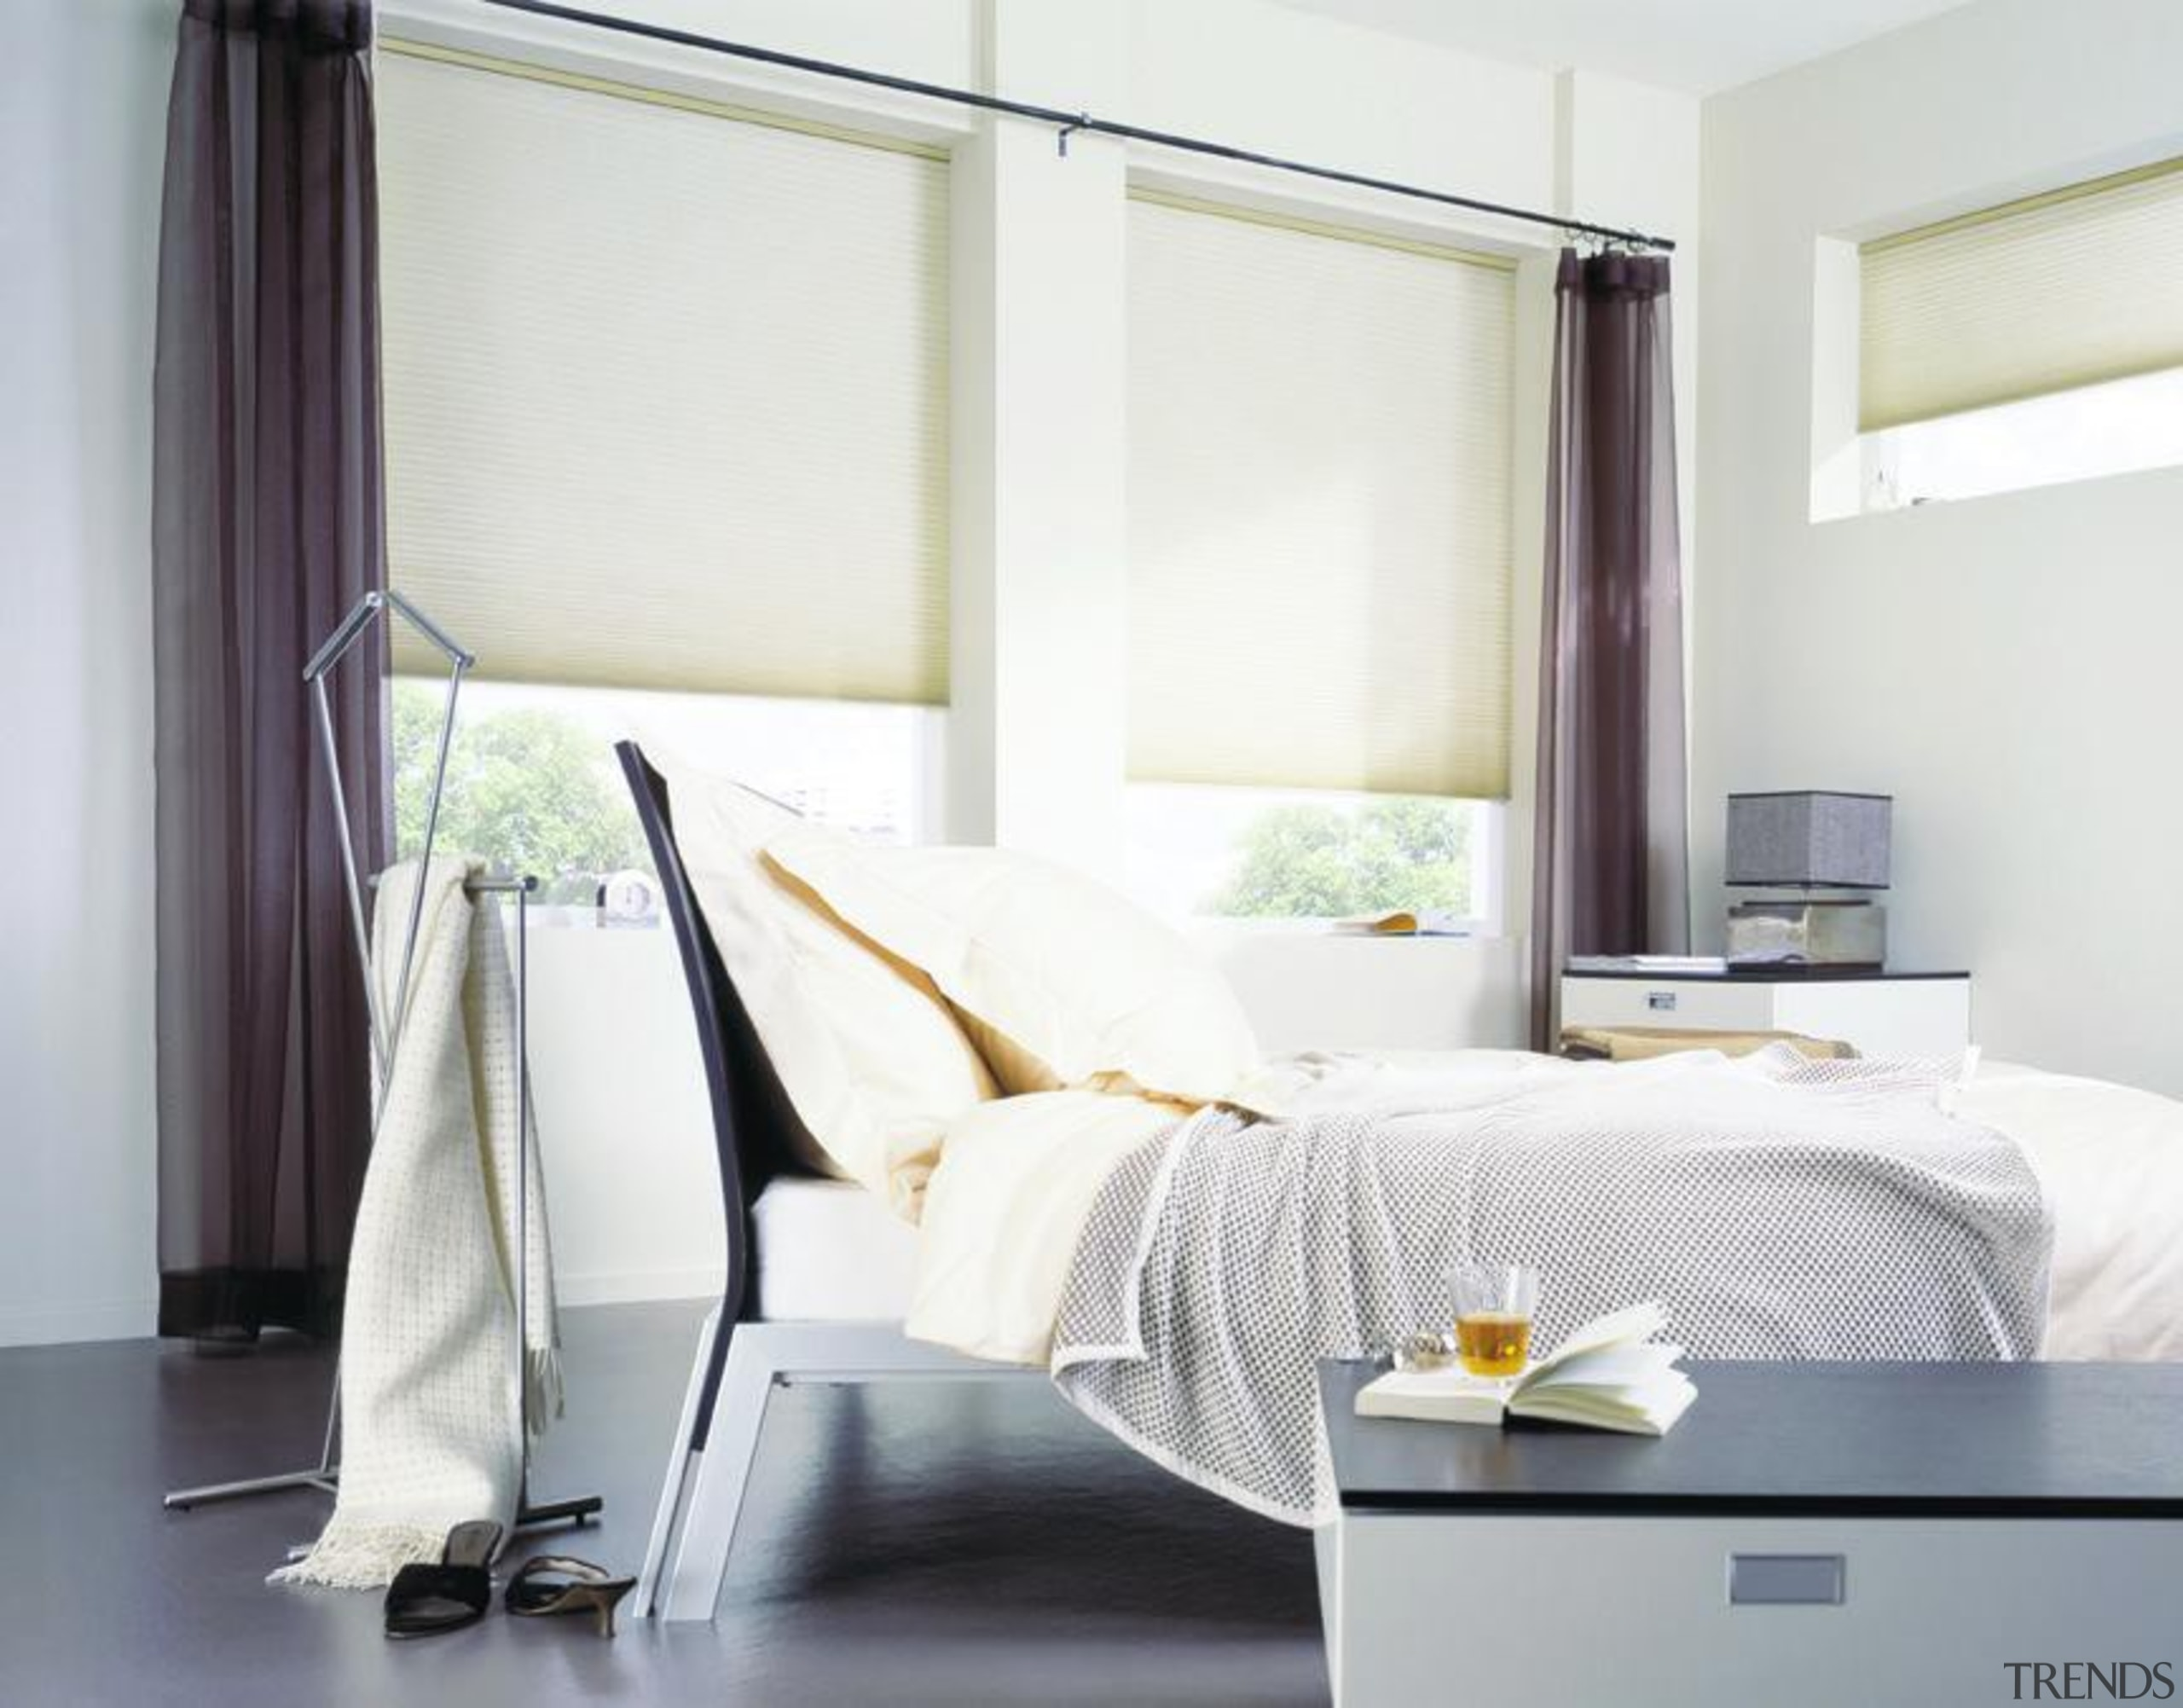 luxaflex duette shades - luxaflex duette shades - bed, bed frame, bed sheet, bedroom, curtain, four poster, furniture, home, interior design, mattress, room, shade, textile, window, window blind, window covering, window treatment, white